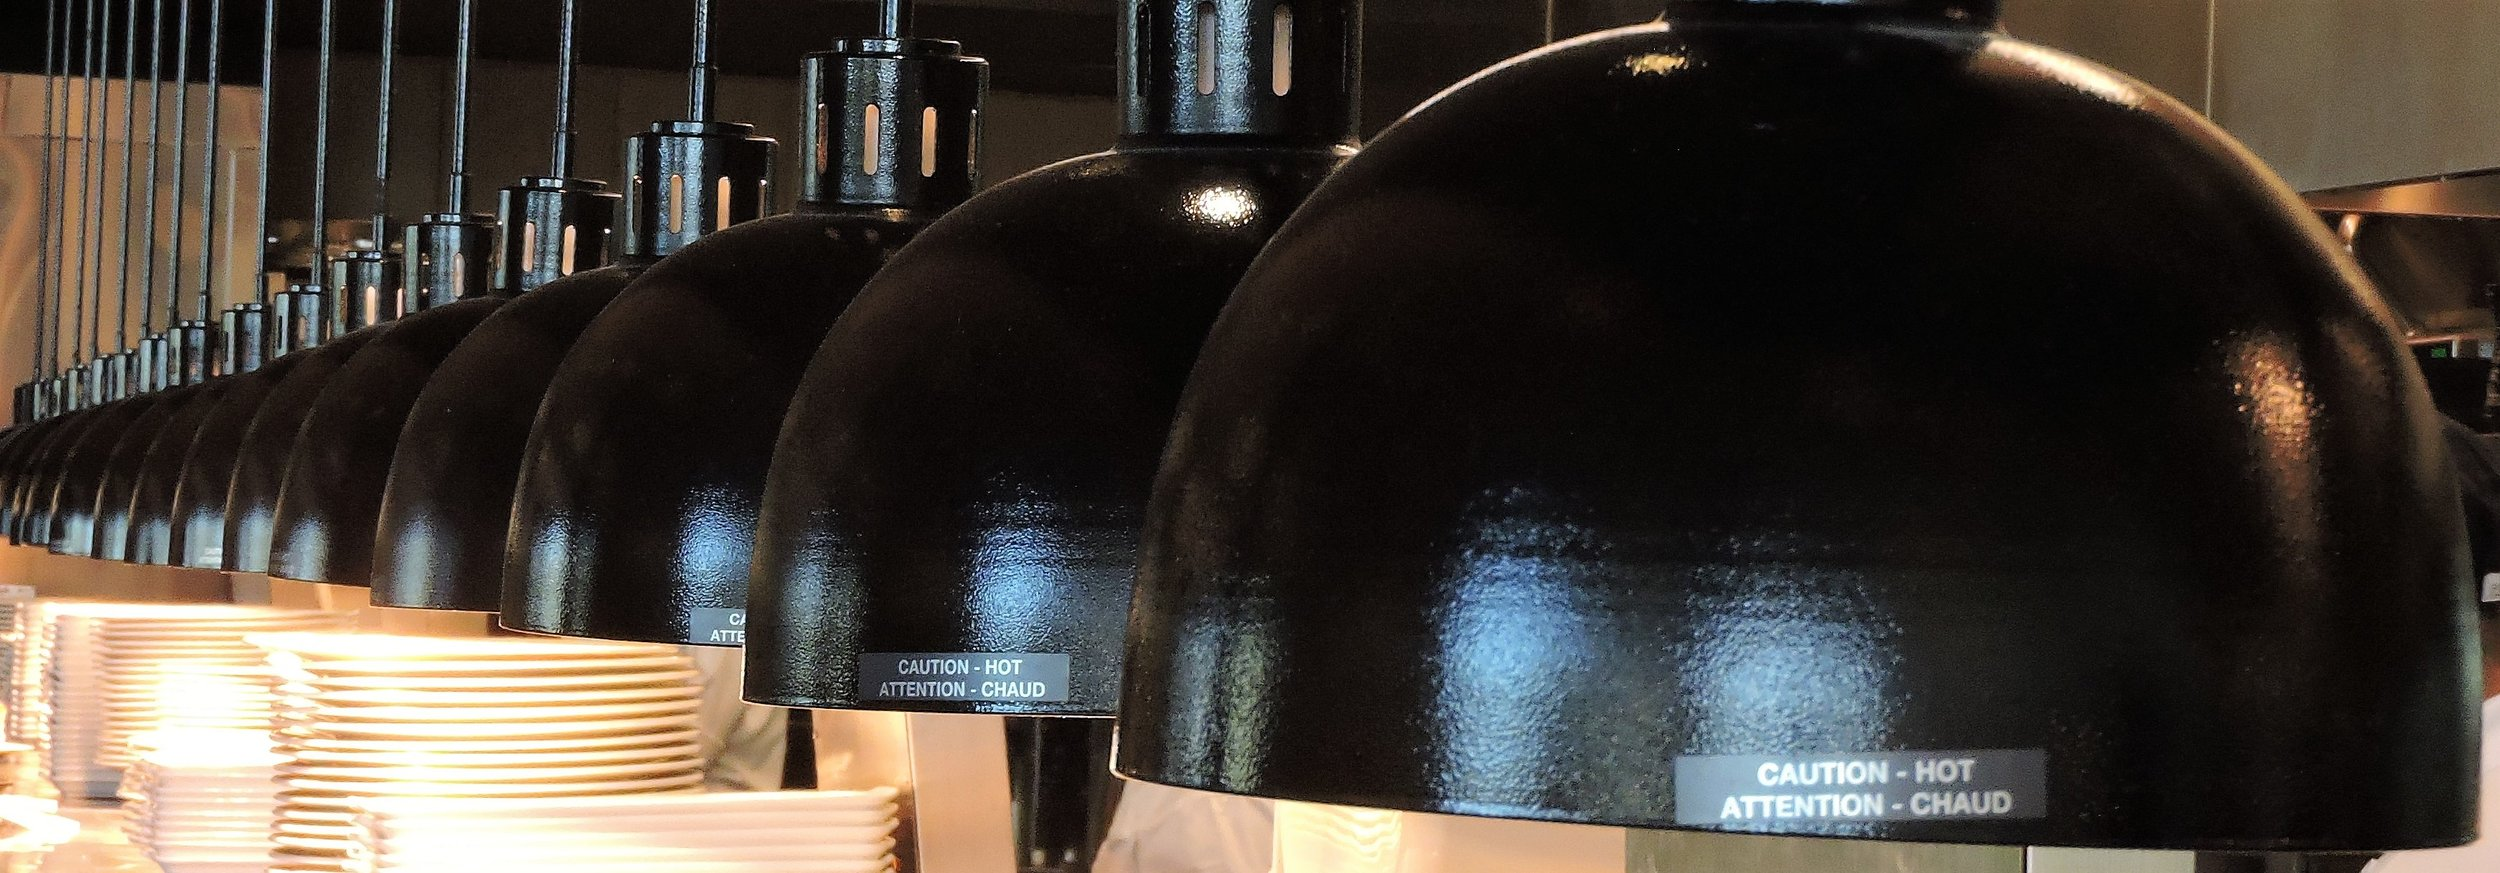 Earls Kitchen and Bar Kitchen Hot Lamps